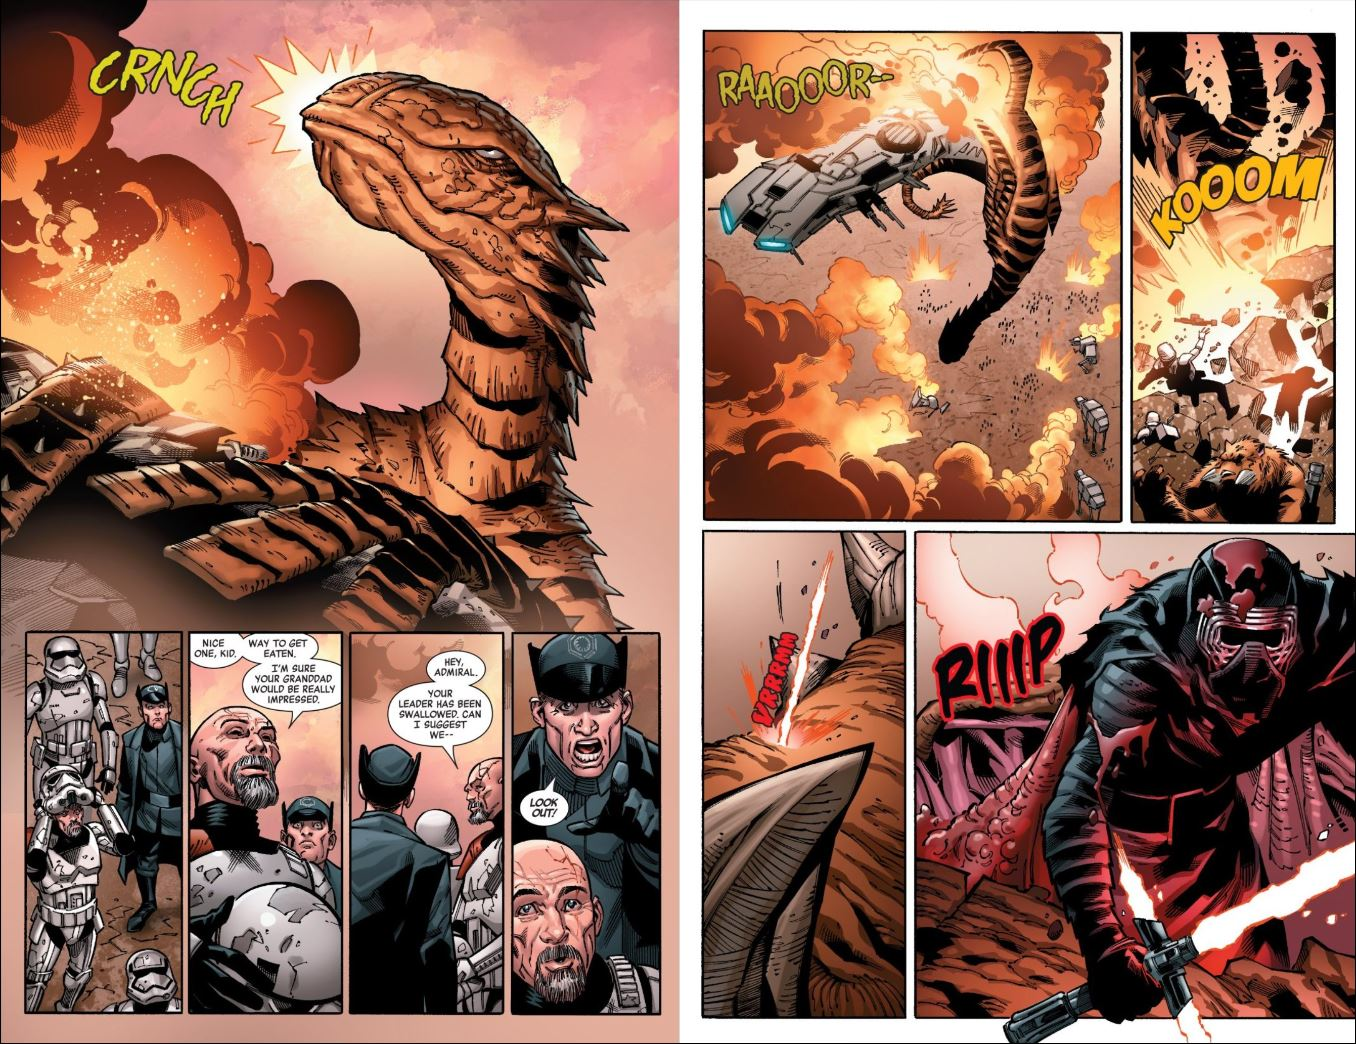 Star Wars Kylo Ren issue 1 Kylo Ren kills the god